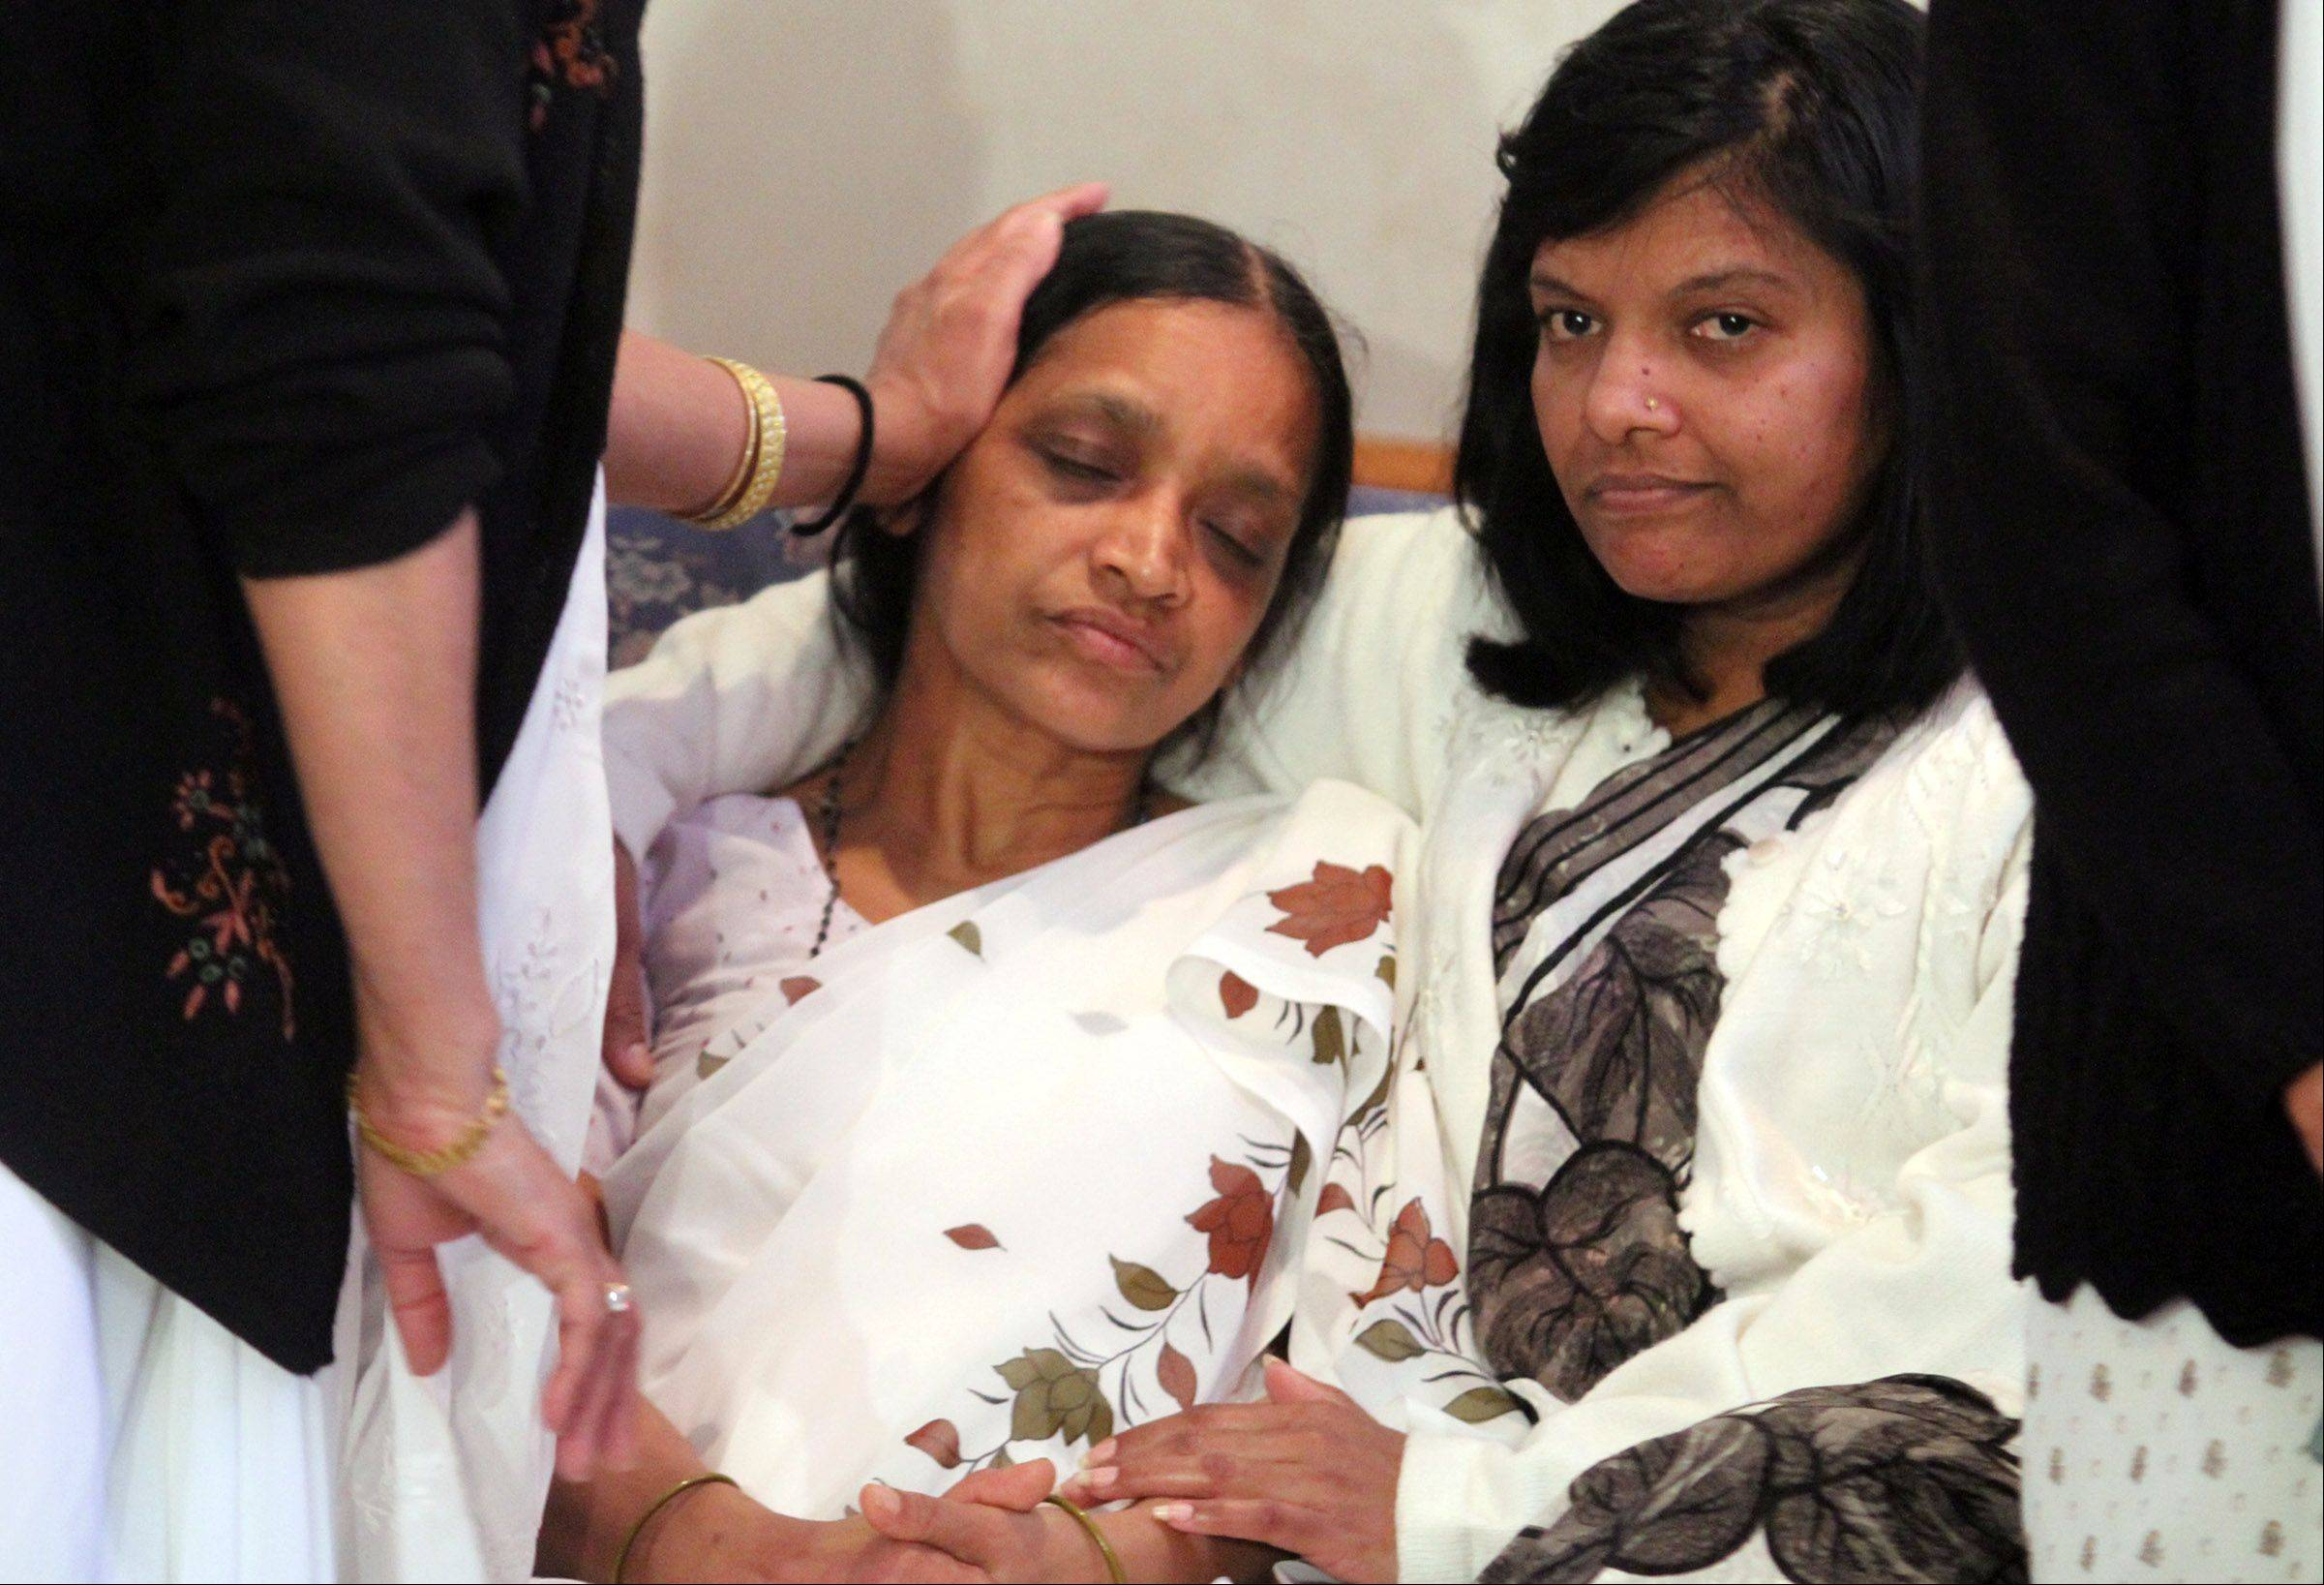 Anandkumar Jaiswal's mother, Malti Jaiswal, is consoled by family members Tuesday as Streamwood police announce an increase in the reward for information that may help find the person behind his murder Saturday during a robbery.